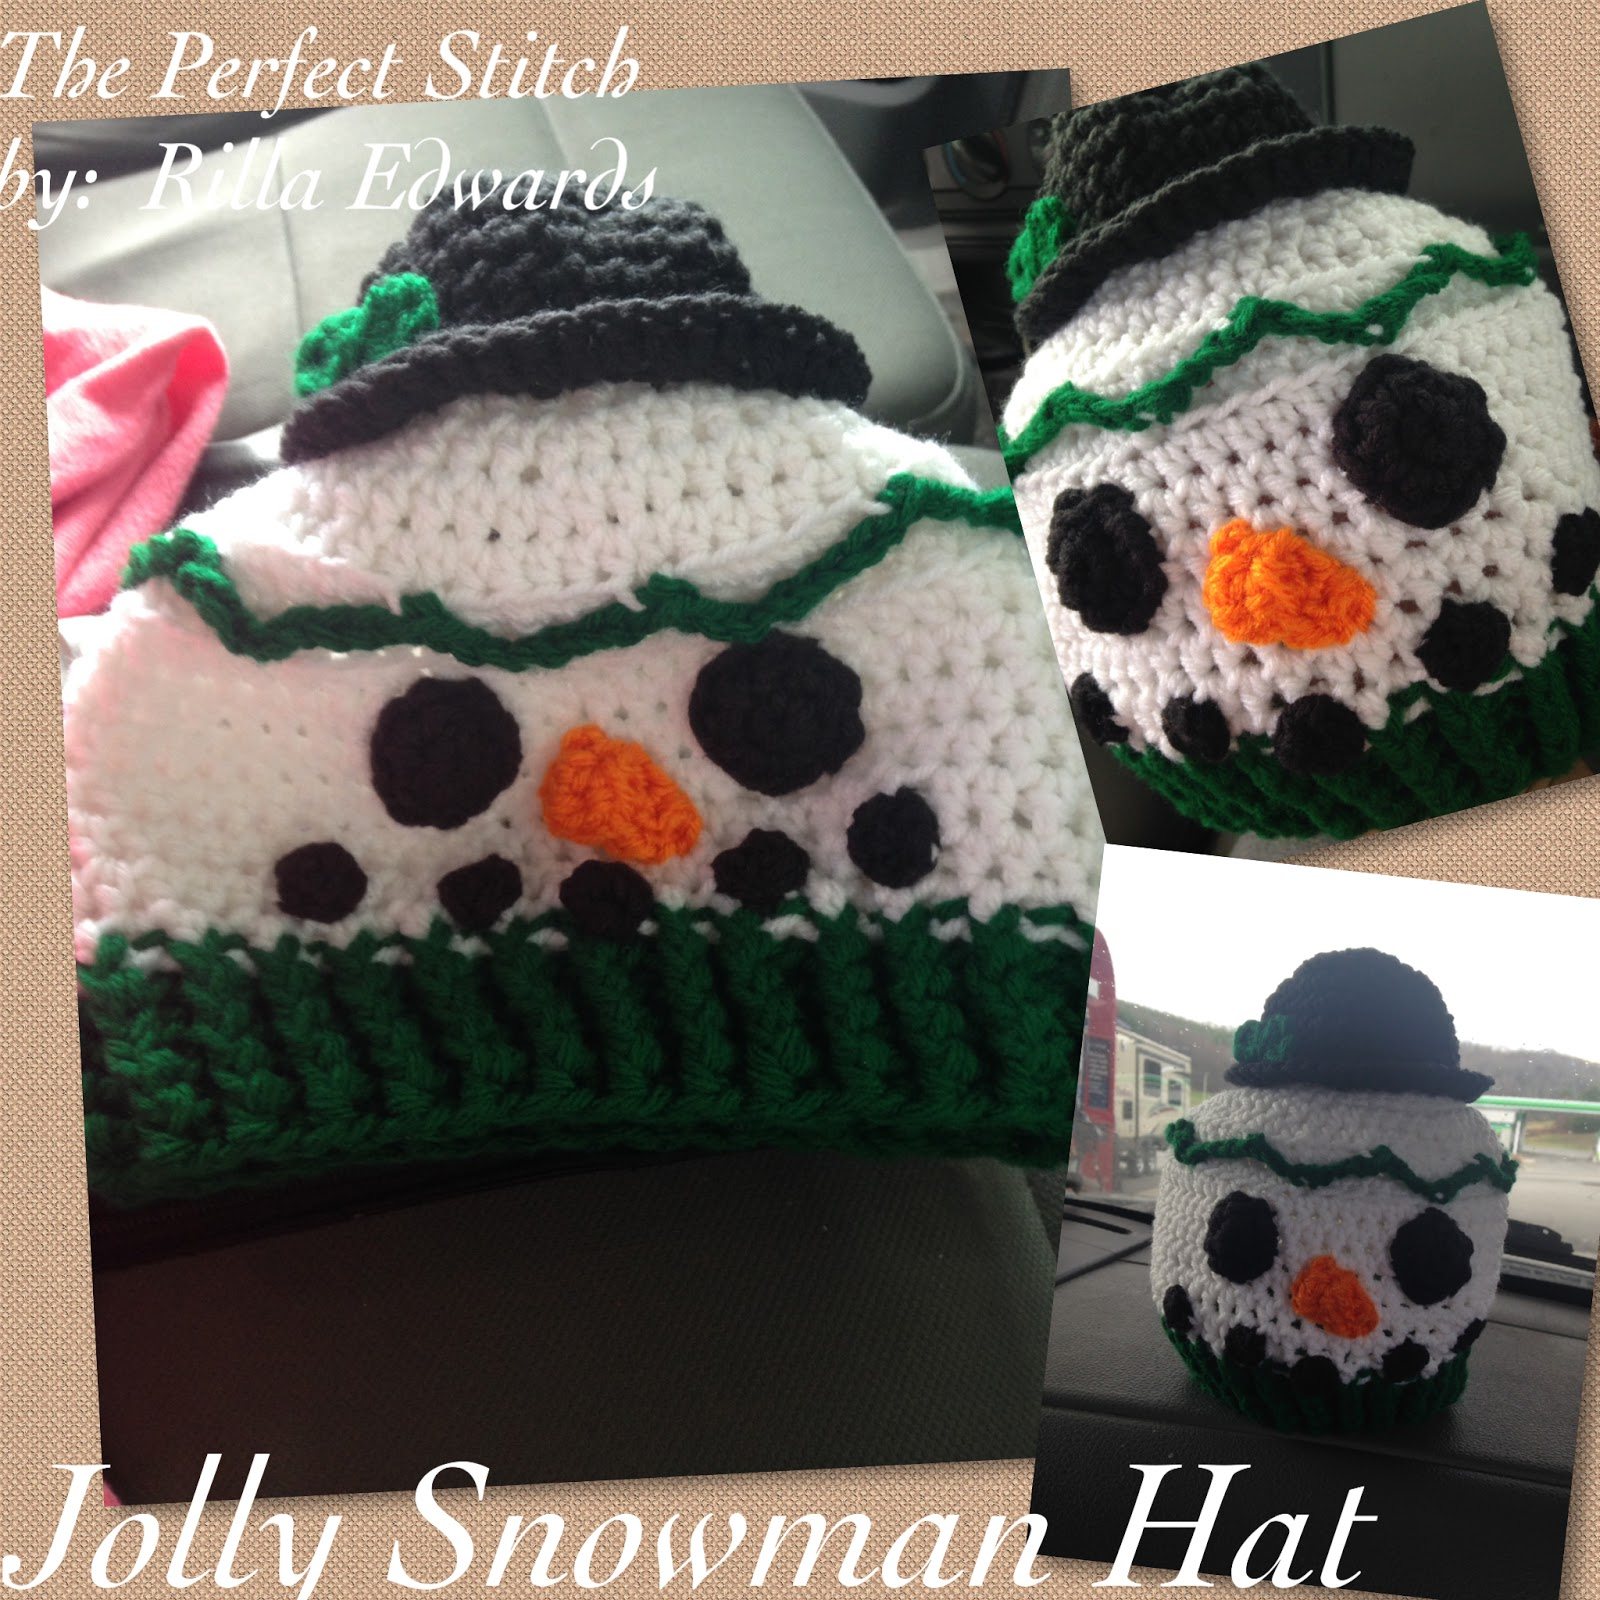 The Perfect Stitch...: Jolly Snowman Hat